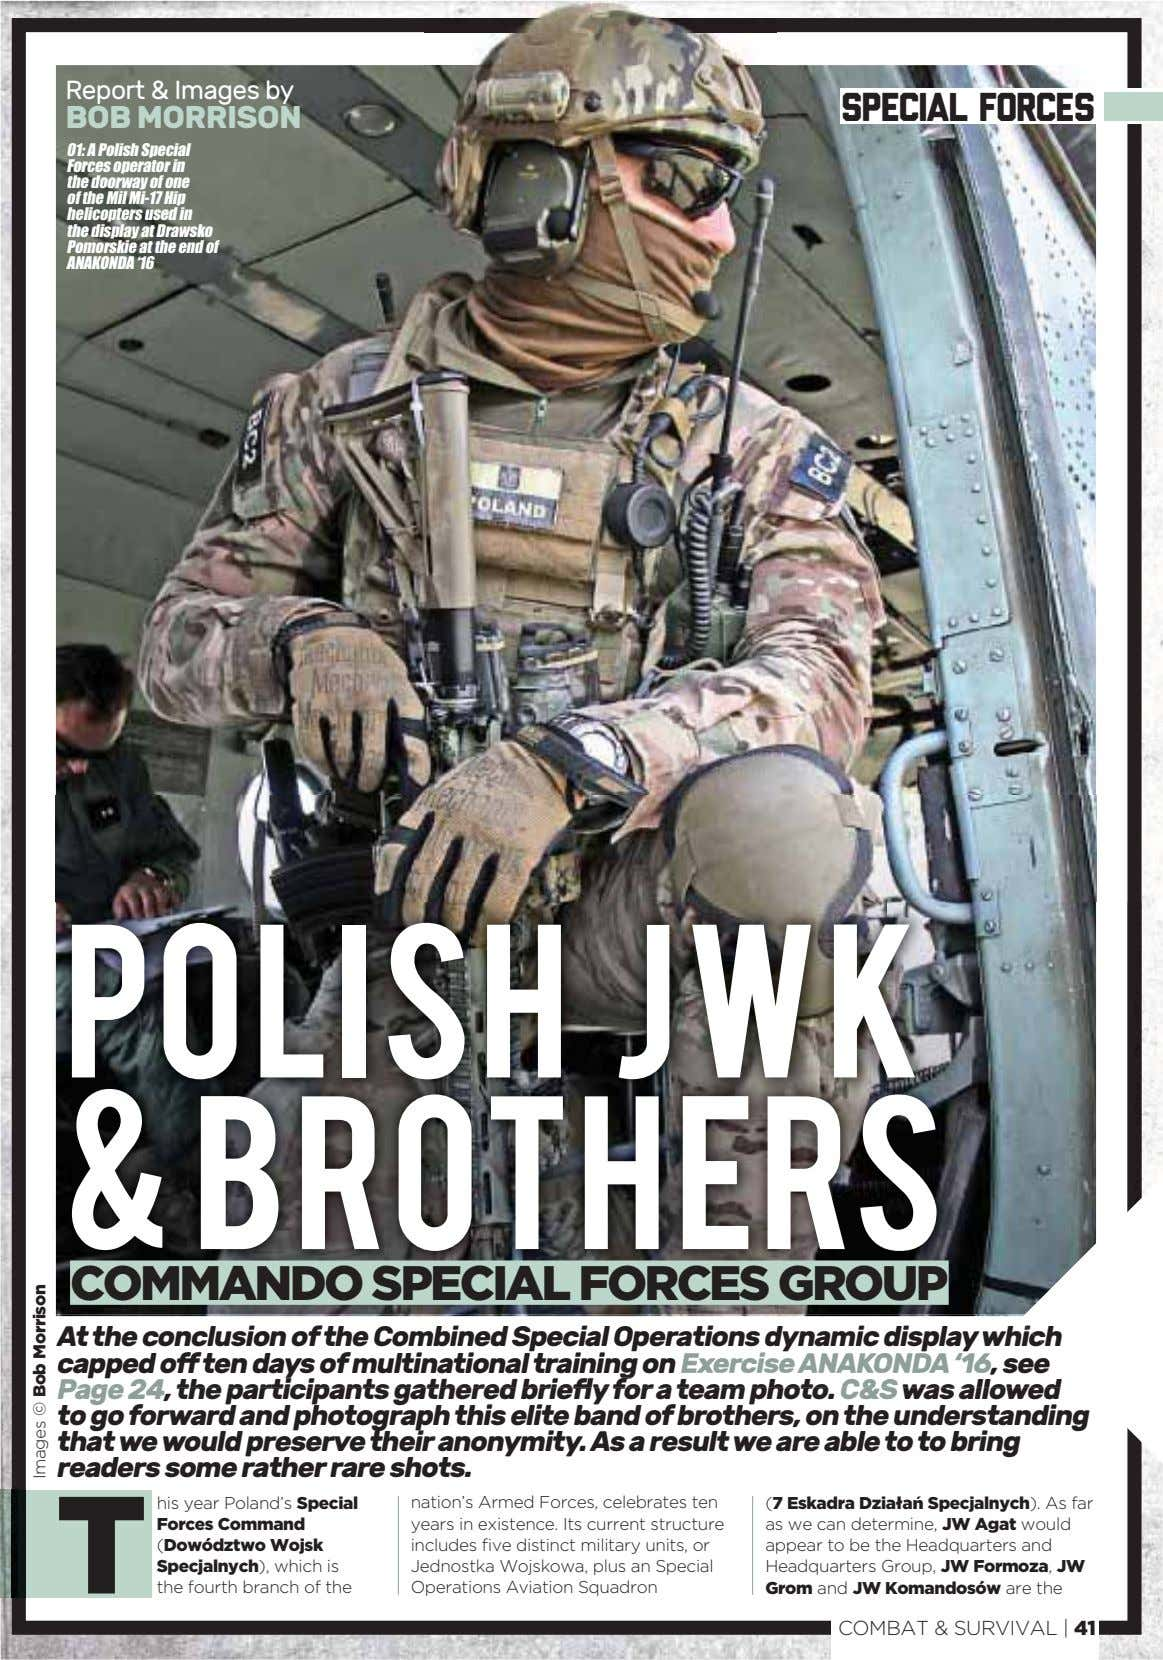 Report & Images by special forces BOB MORRISON 01: A Polish Special Forces operator in